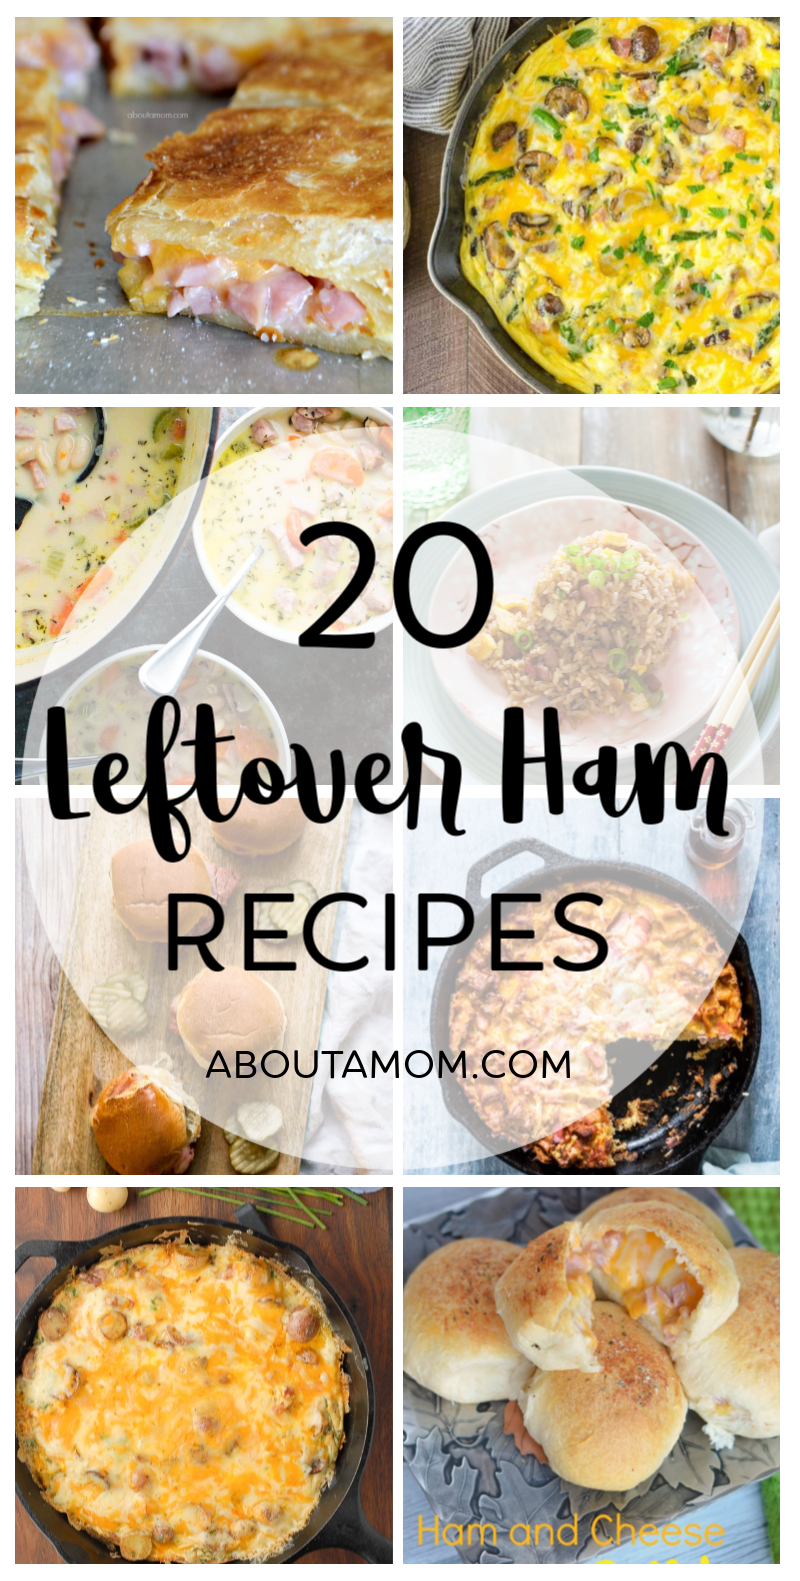 Not sure what to do with your leftover holiday ham? No worries. There are some terrific recipes that use leftover ham and I've rounded up some of the very best leftover ham recipes for you.